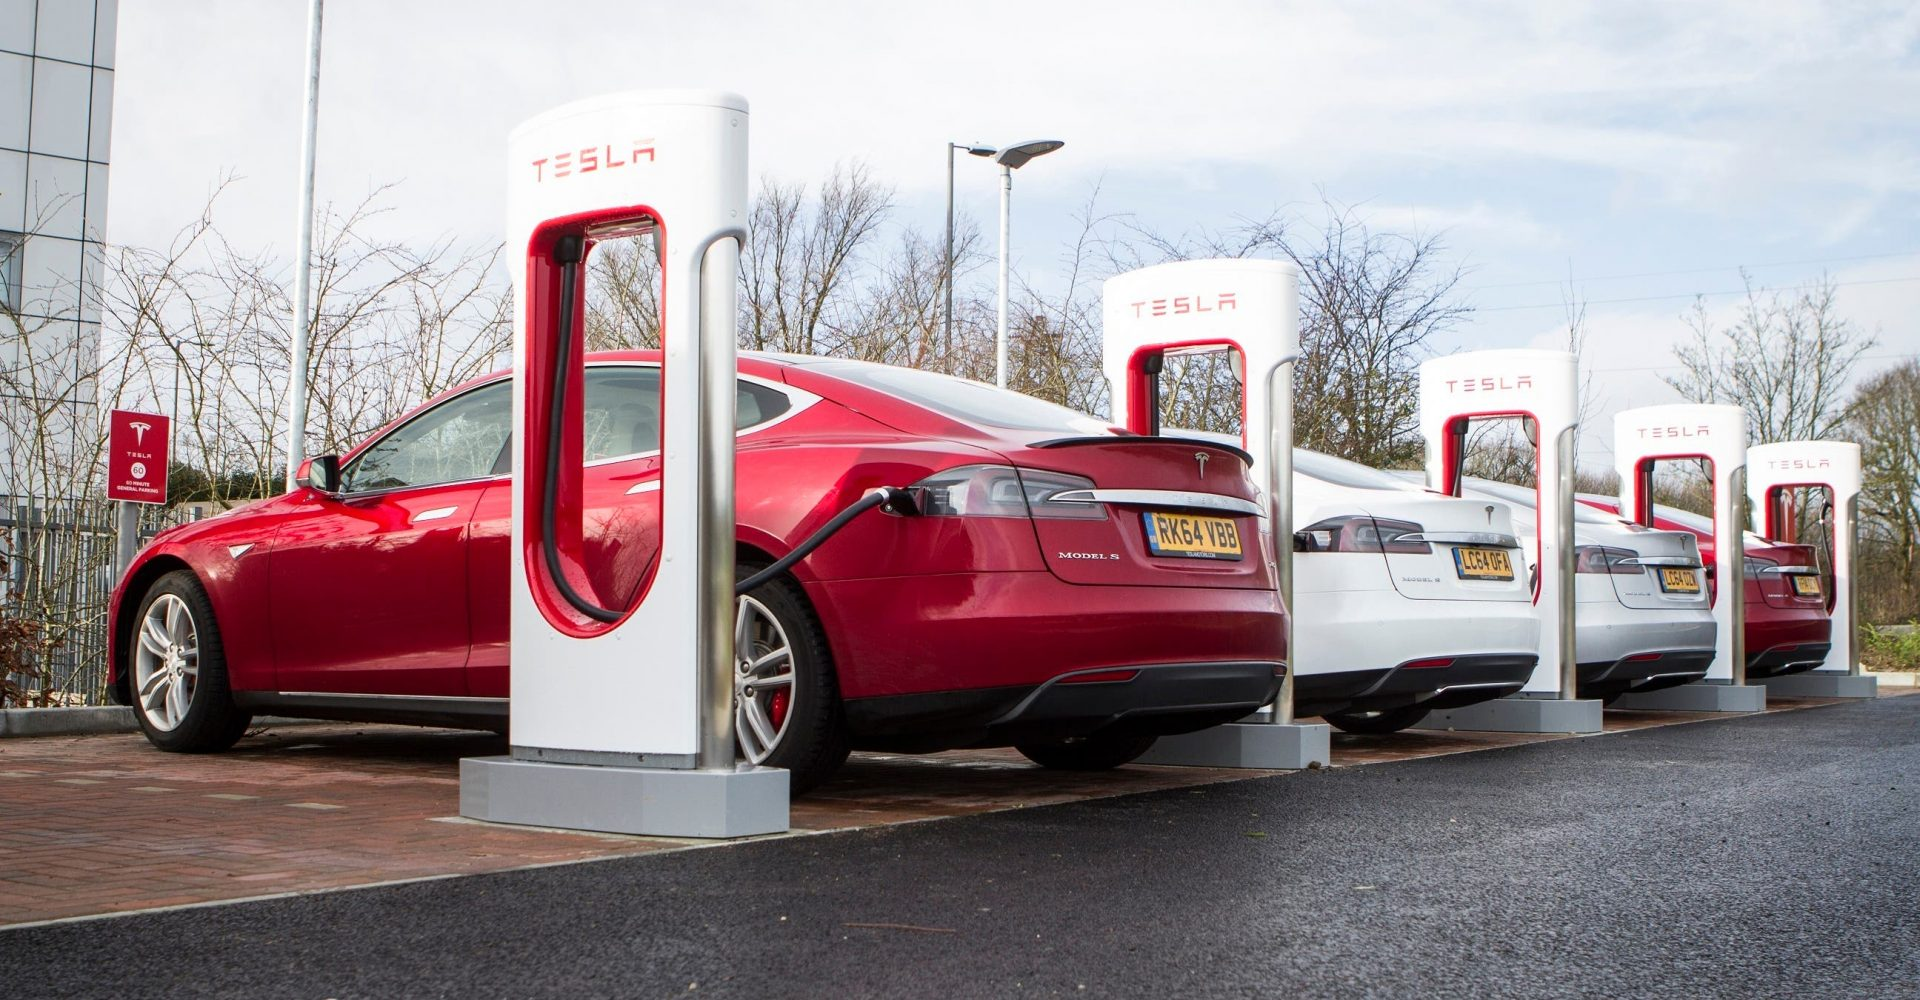 New Tesla battery technology will lead to affordable electric vehicle